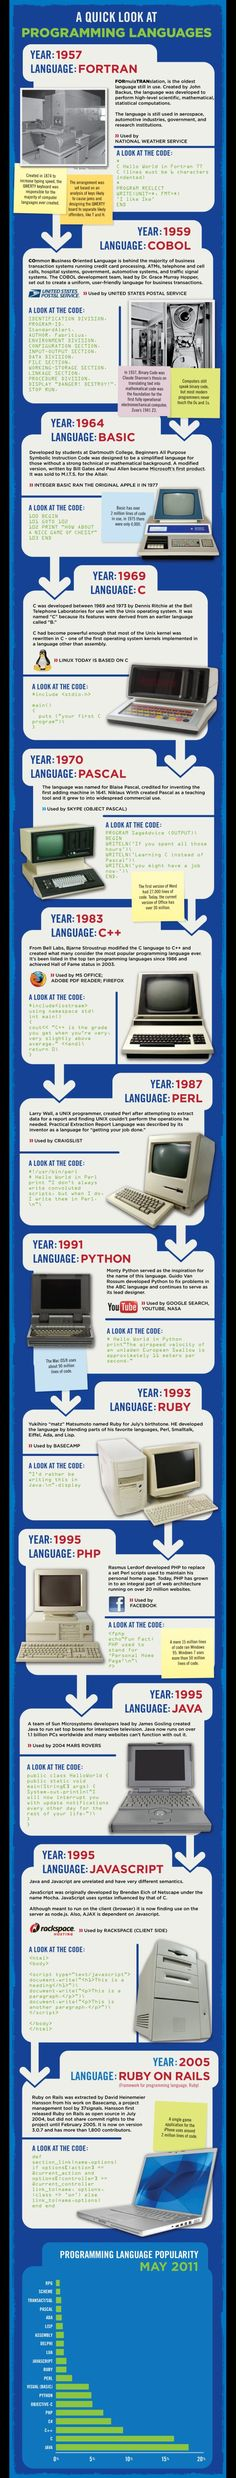 The History Of Programming Languages [Infographic]